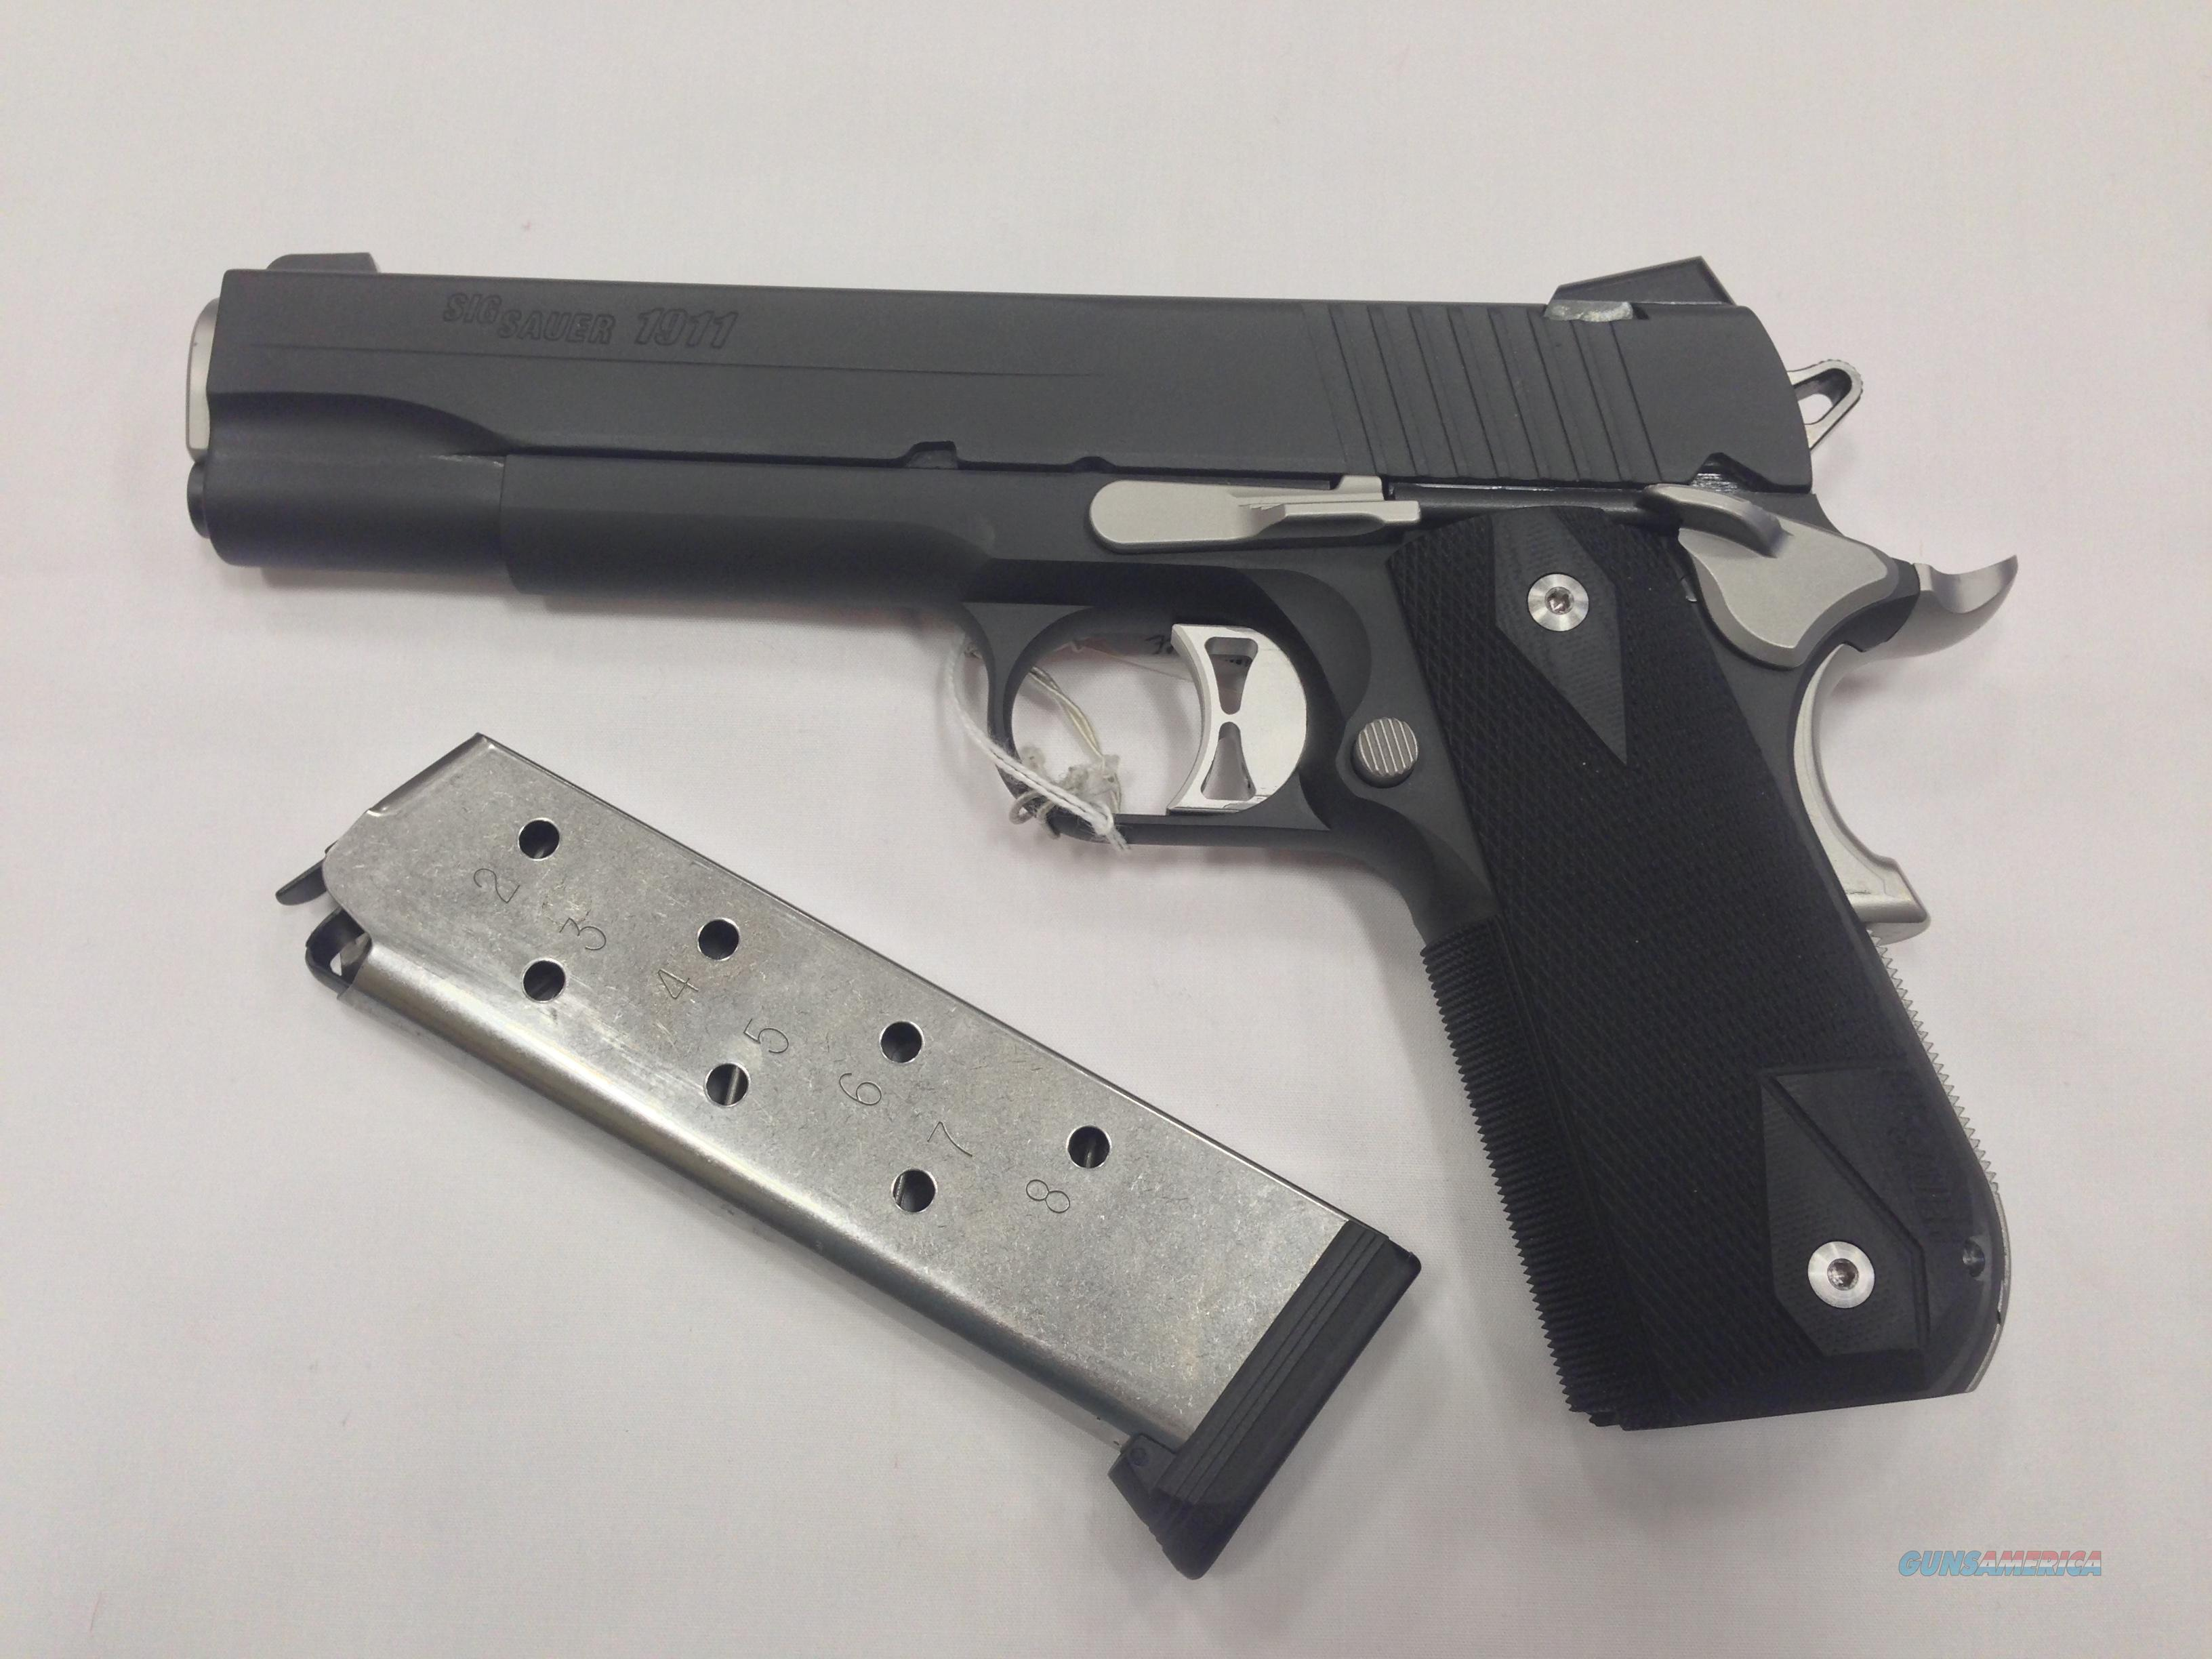 Sig Sauer 1911 Carry Nightmare  Guns > Pistols > Sig - Sauer/Sigarms Pistols > 1911